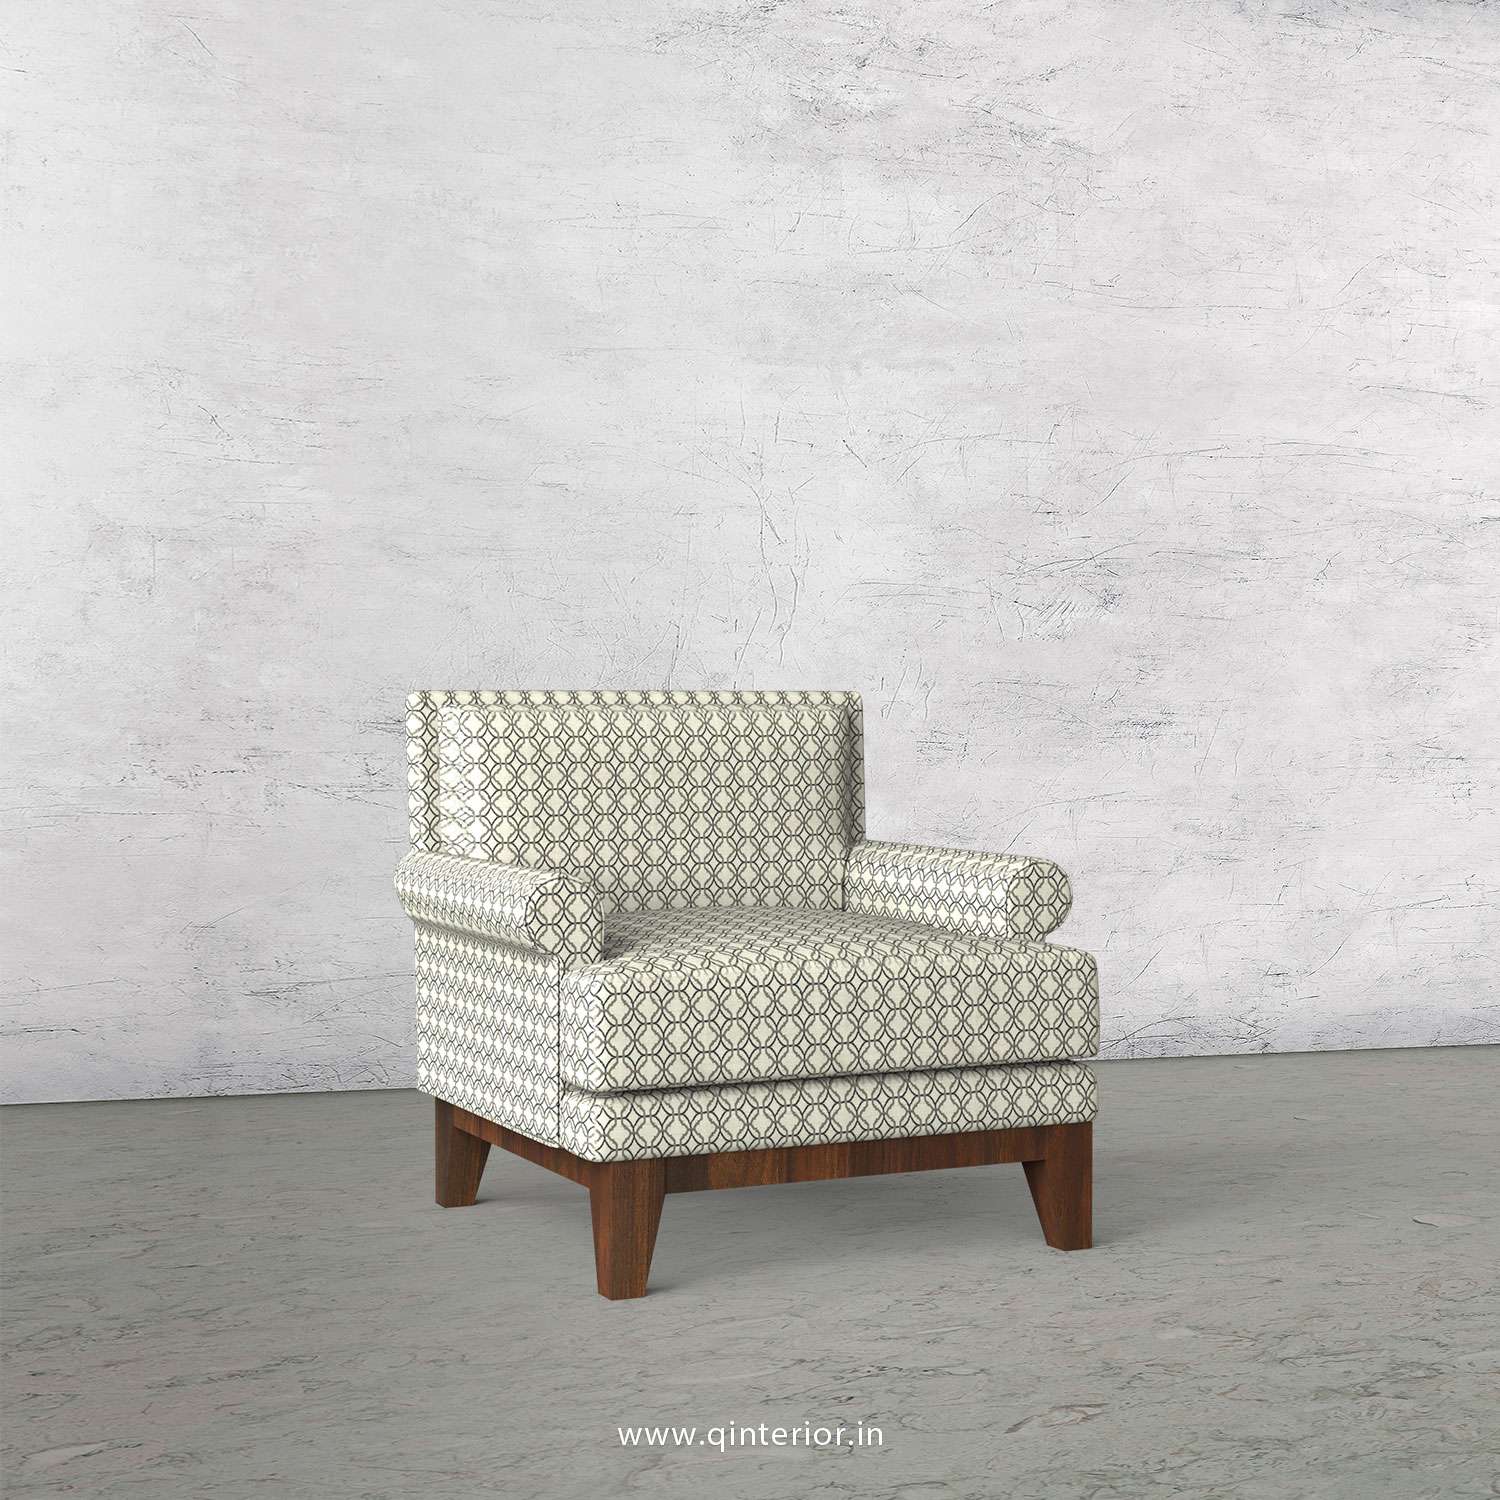 Aviana 1 Seater Sofa in Jacquard - SFA001 JQ03